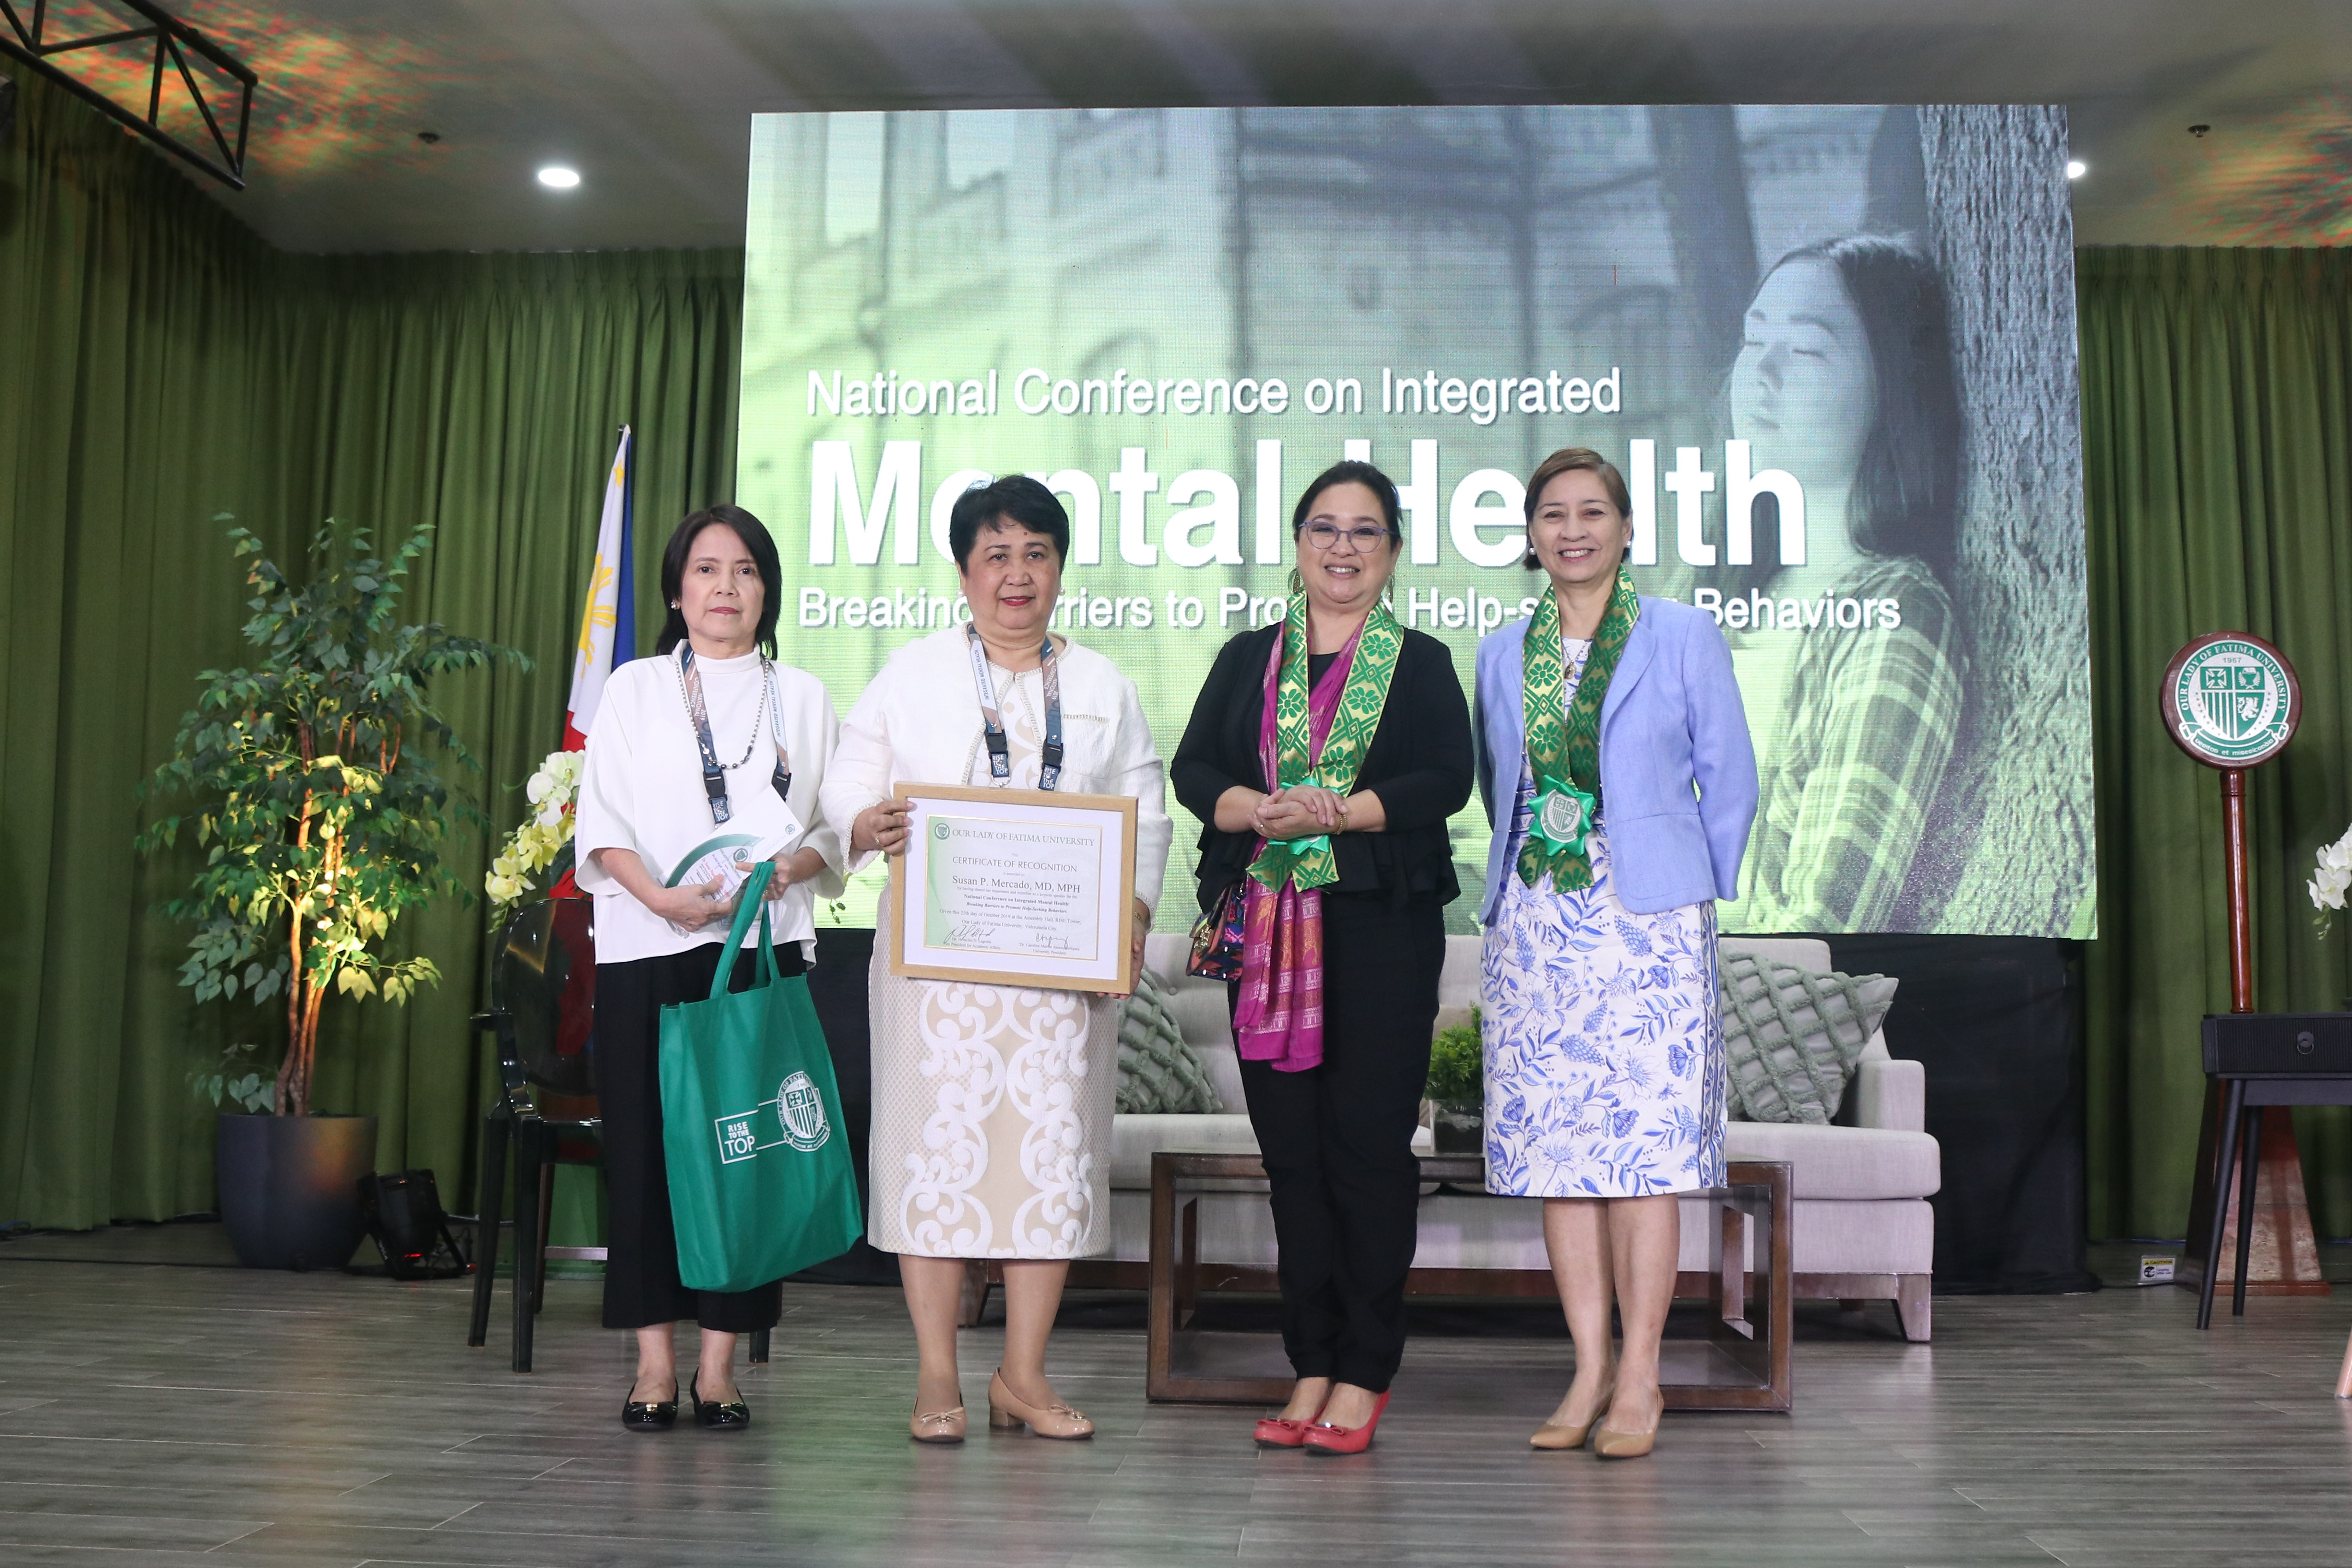 OLFU breaks barriers through National Conference on Integrated Mental Health